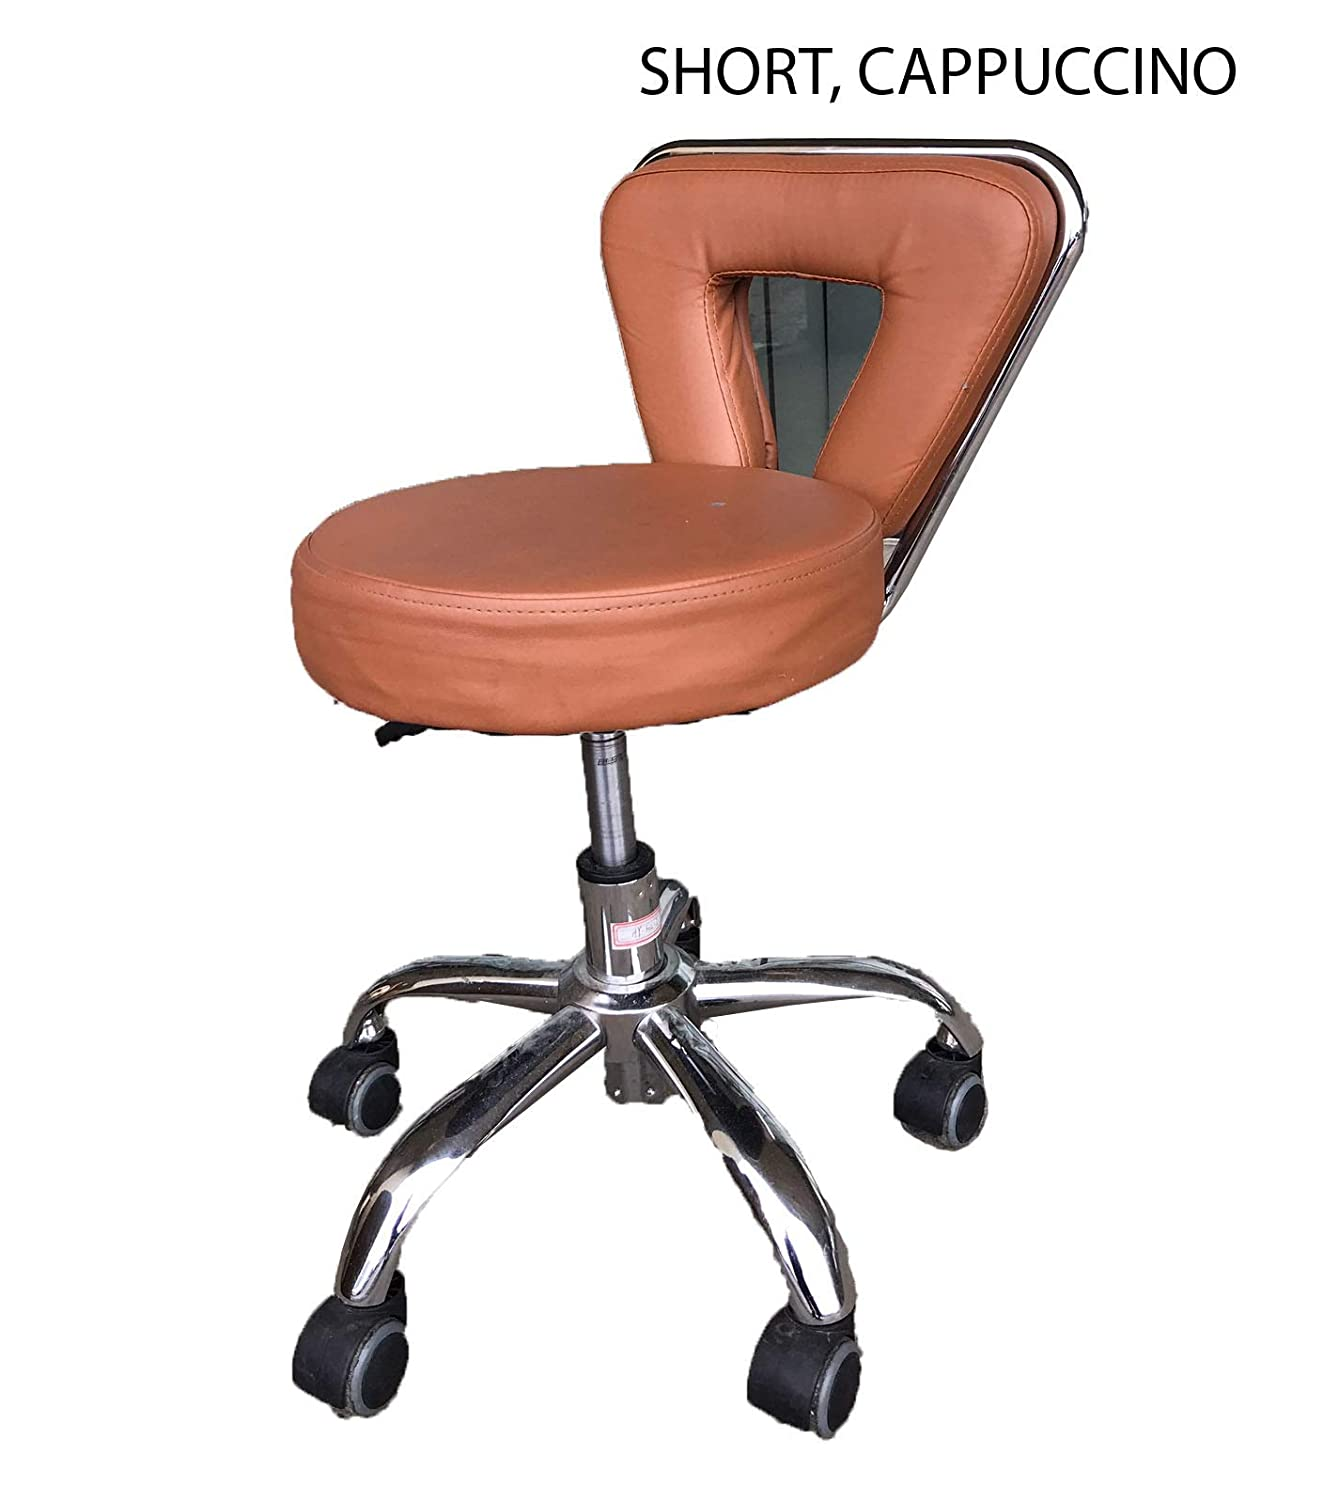 Amazon.com: Spa Chair Pedicure Stool for Nail, Hair, Facial Technician (Short, Black): Beauty